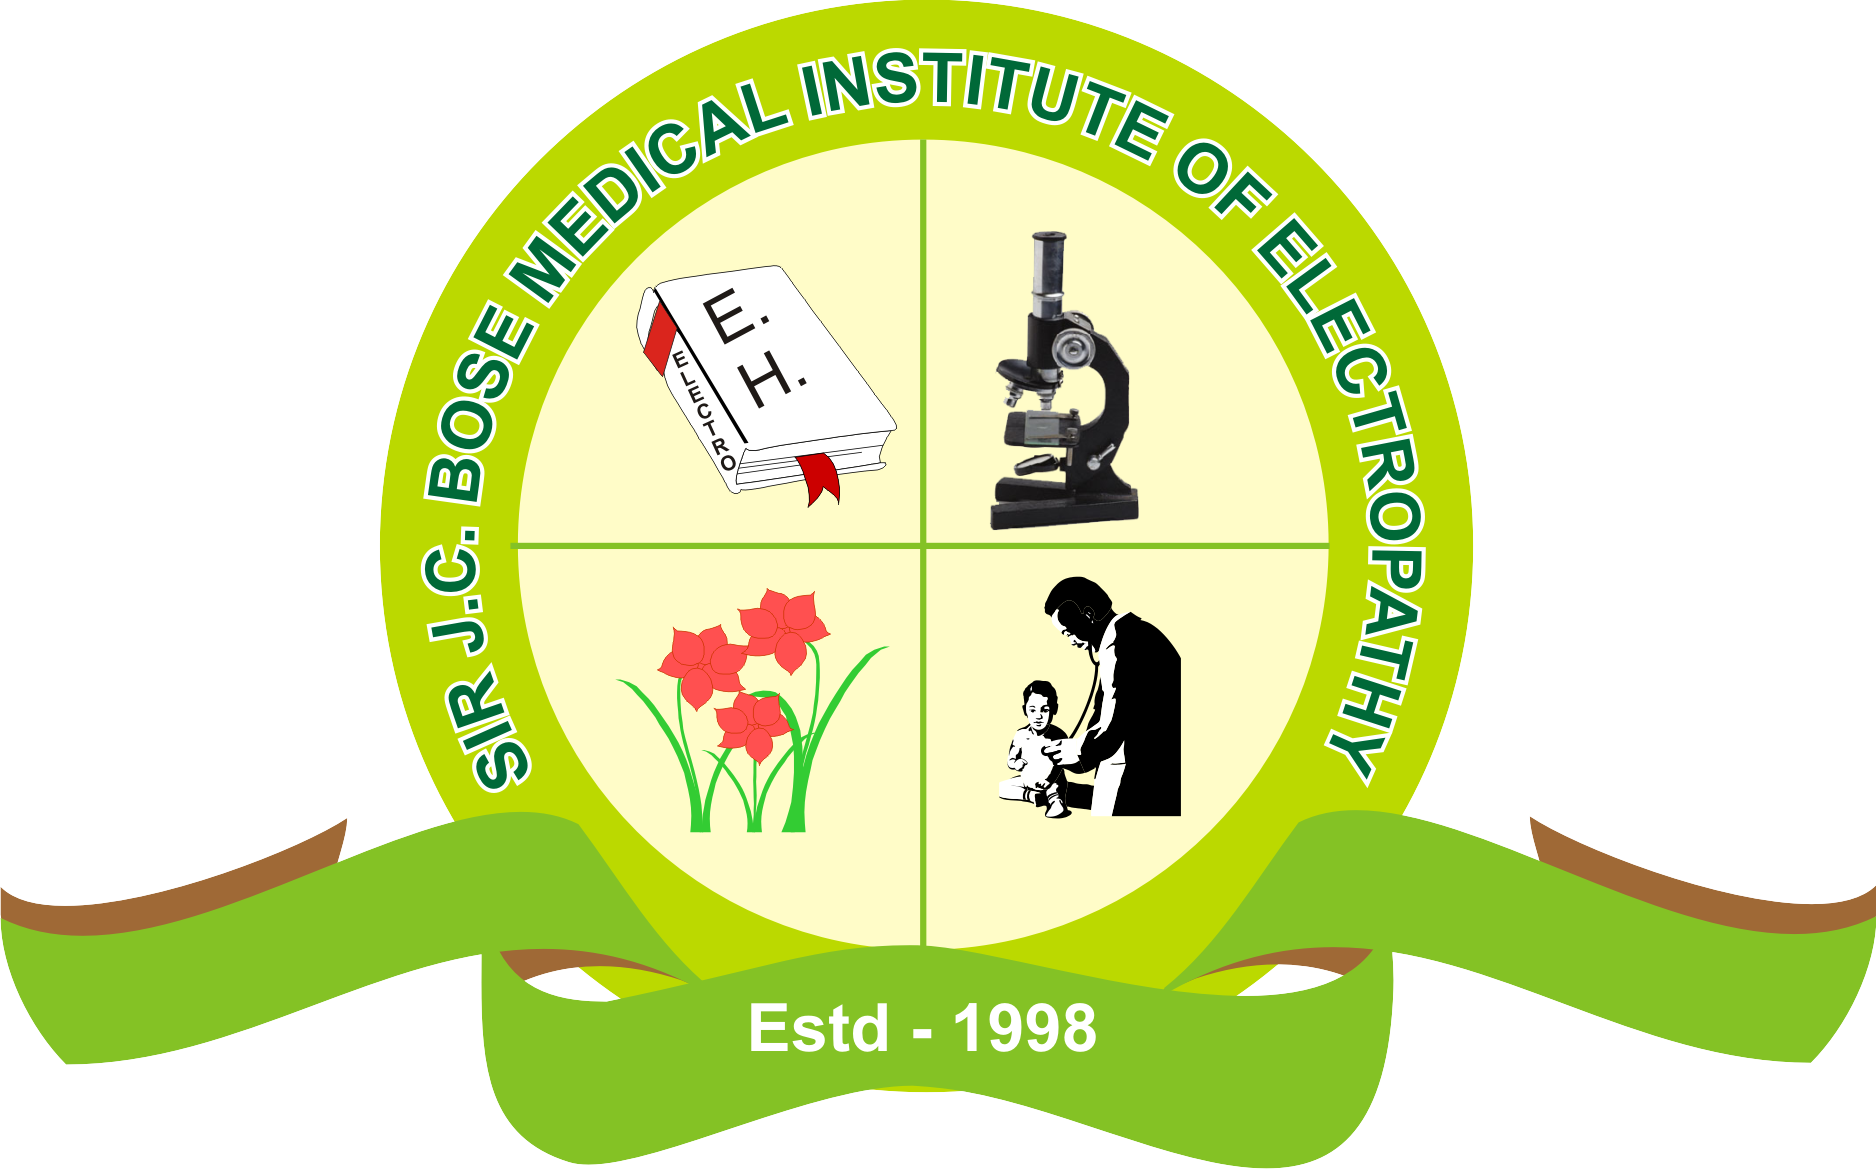 Sir J.C. Bose Medical Institute of Electropathy